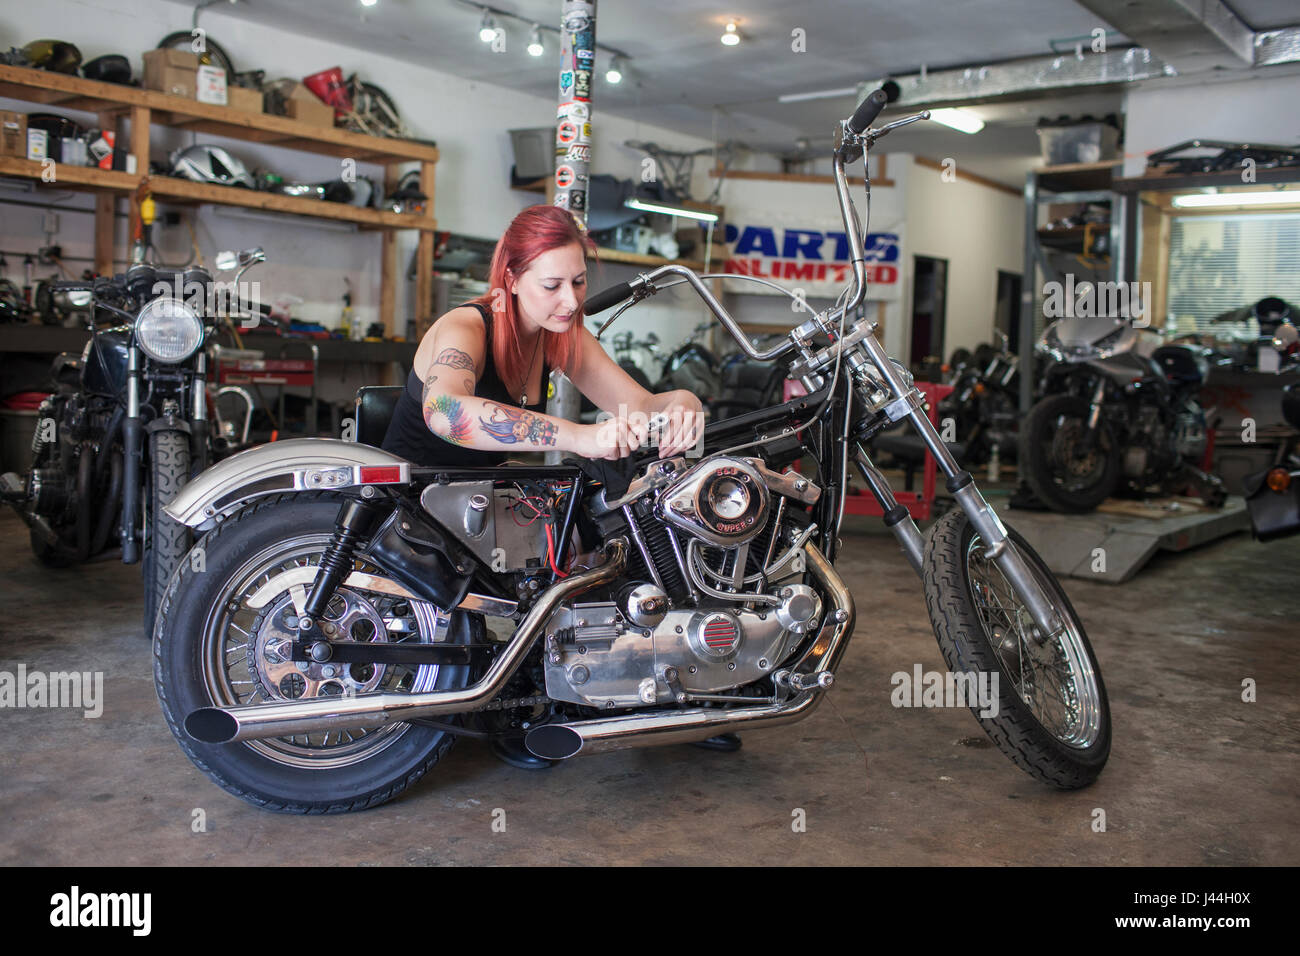 A young woman repariing a motorcycle. - Stock Image